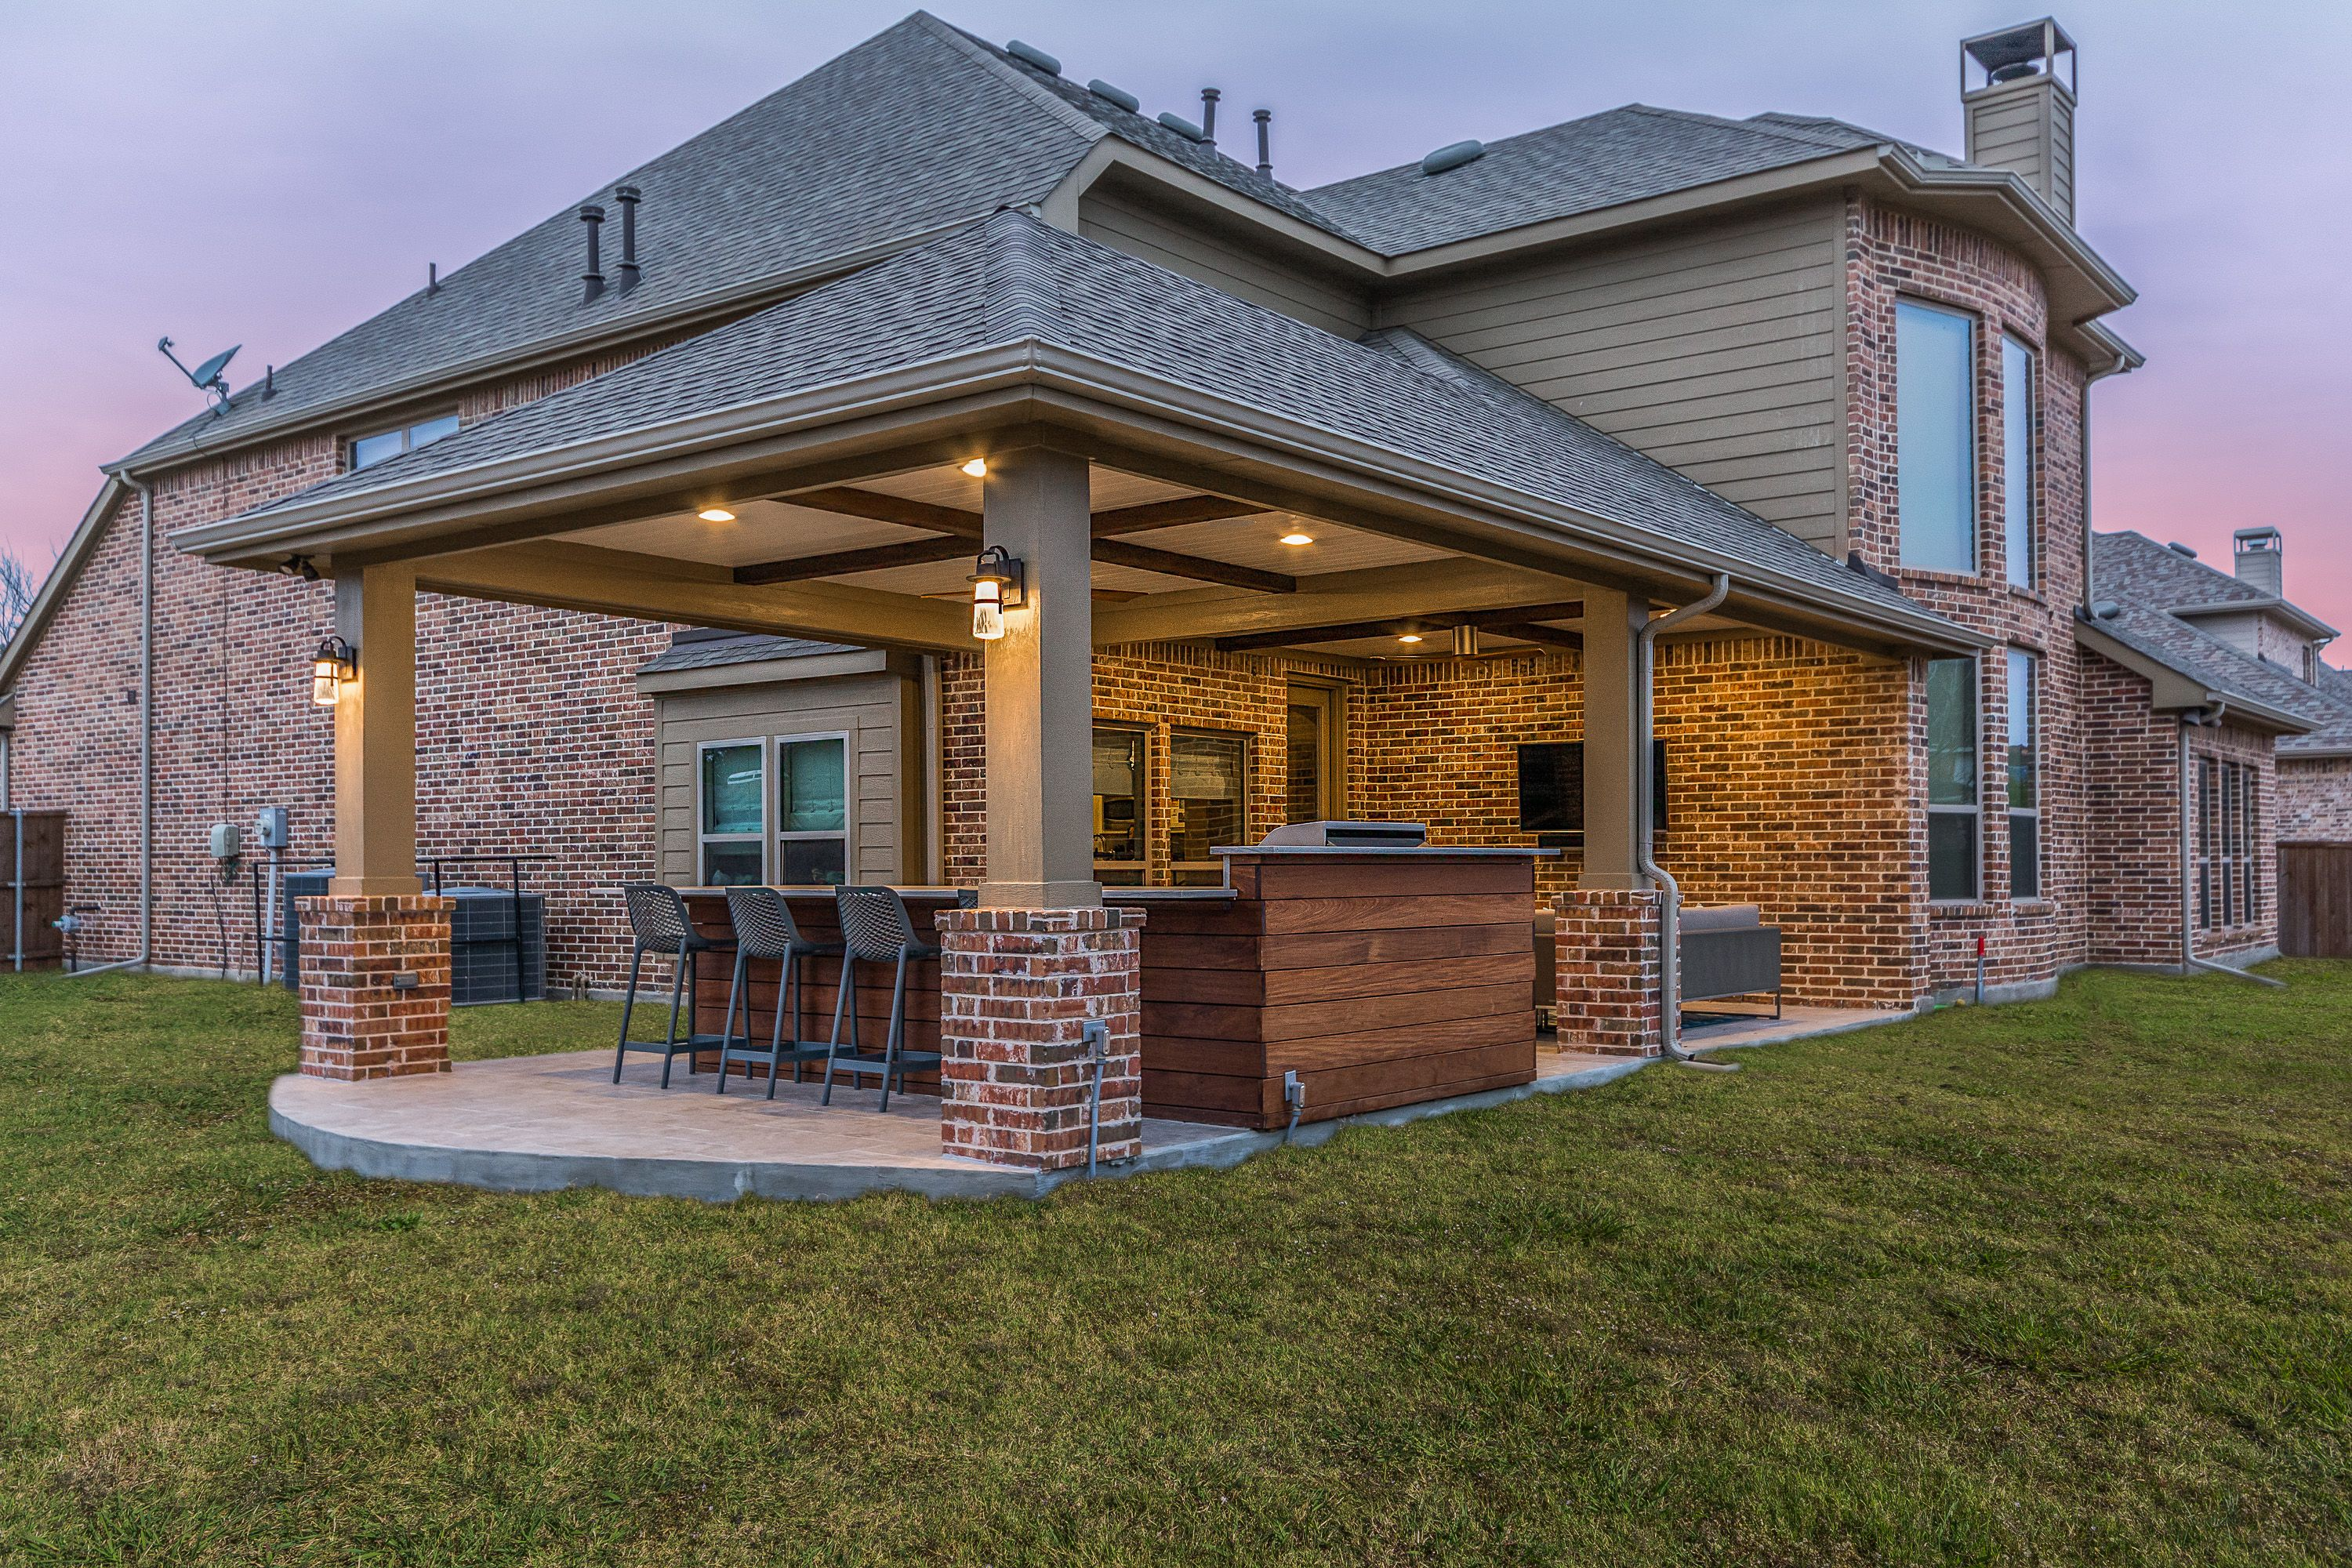 This Homeowner Wanted To Extend Their Small Patio Cover That Was Built With The Home And Add An Outdoor Kit Covered Patio Design Backyard Pavilion Patio Design